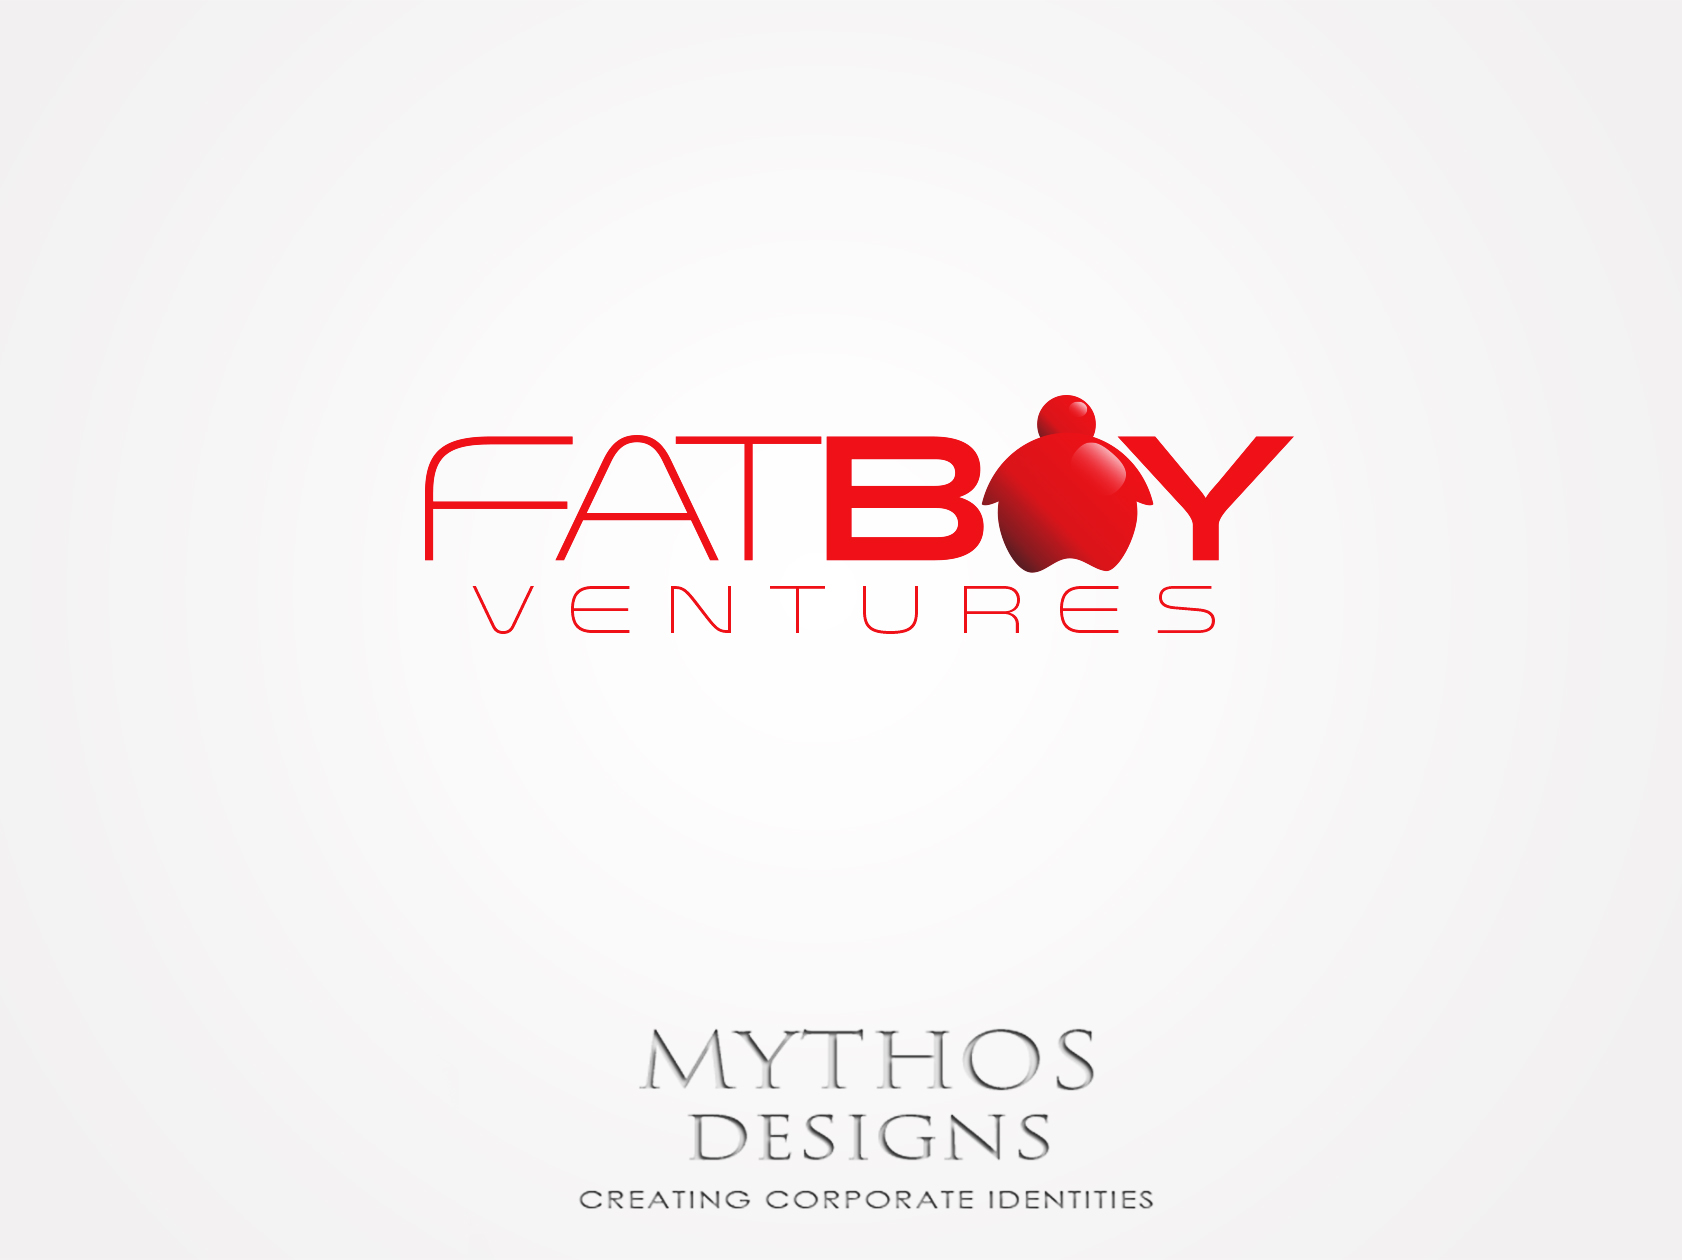 Logo Design by Mythos Designs - Entry No. 90 in the Logo Design Contest Fun Logo Design for Fat Boy Ventures.